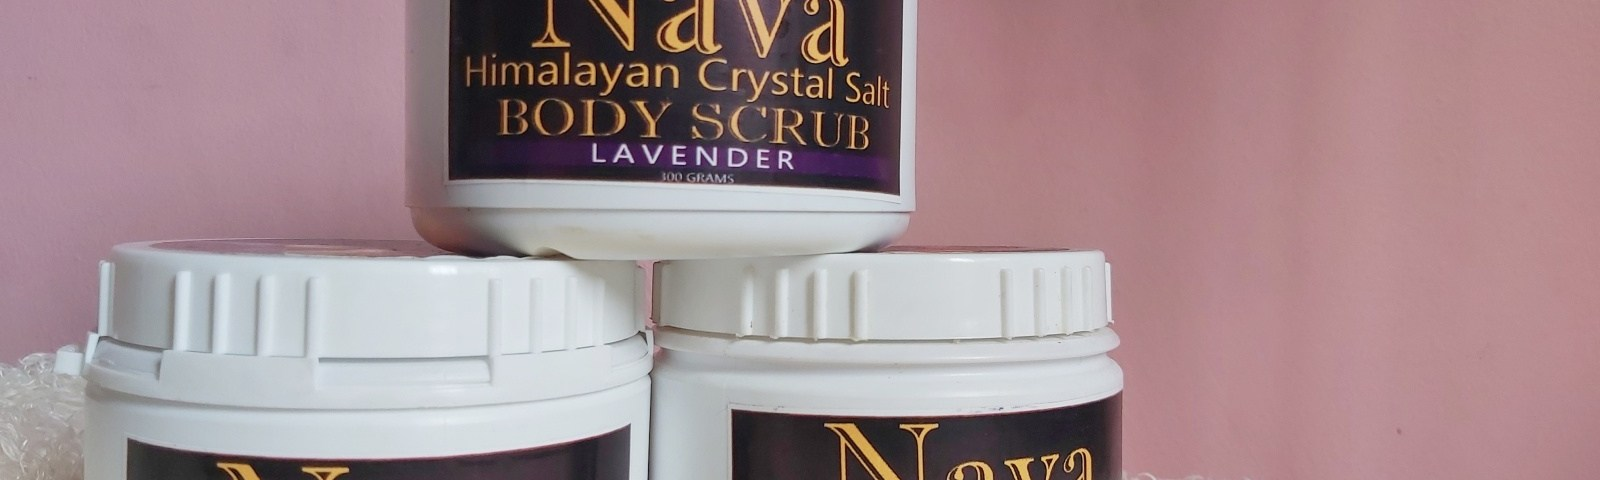 Nava Himalayan Crystal Salt Body Scrub